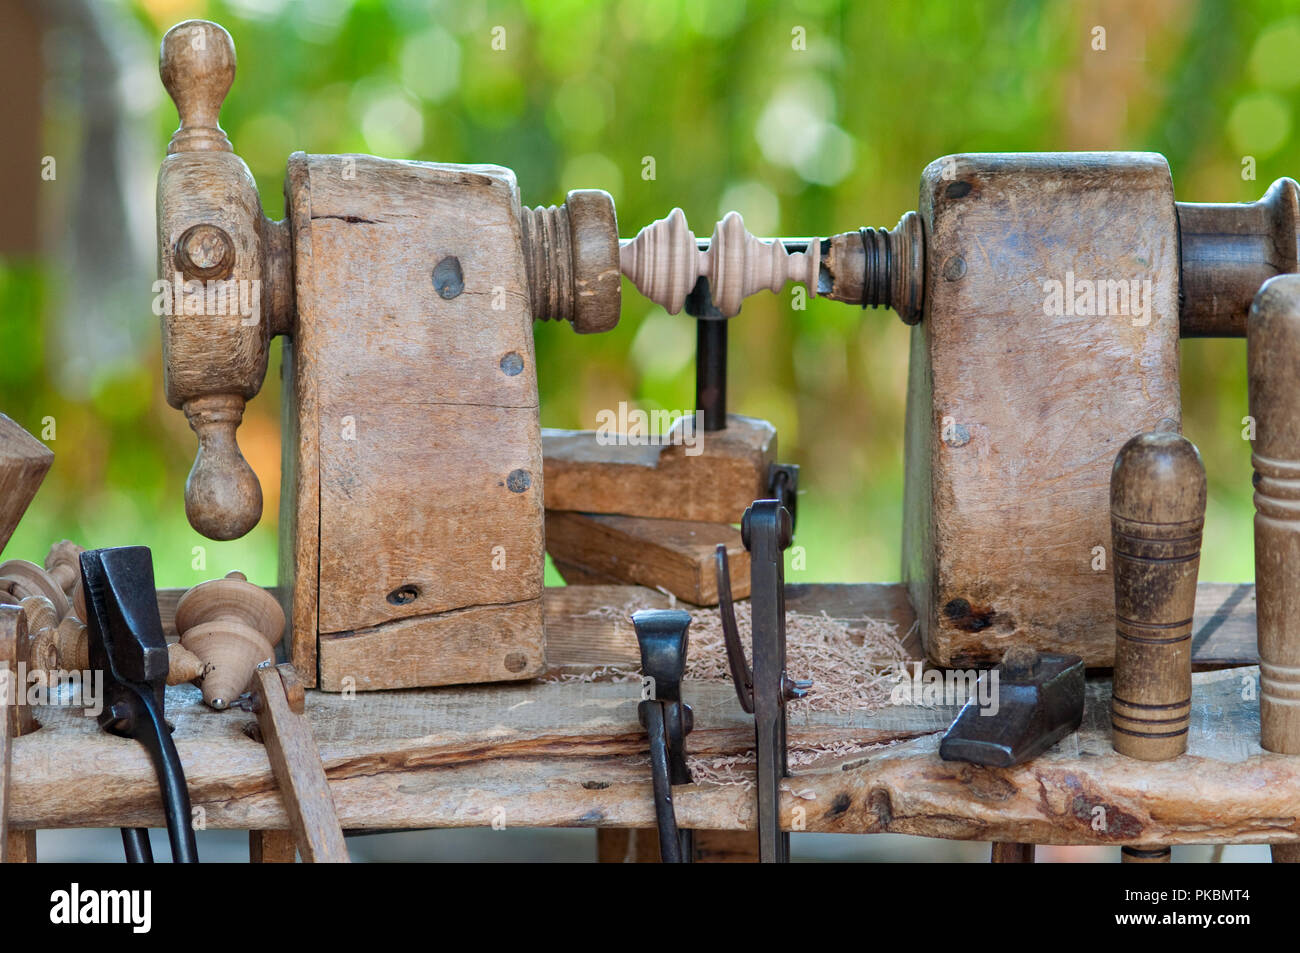 Italy, Lombardy, Historical Reenactment, Lathe Wooden Stringed, Construction of Spins in Wood - Stock Image